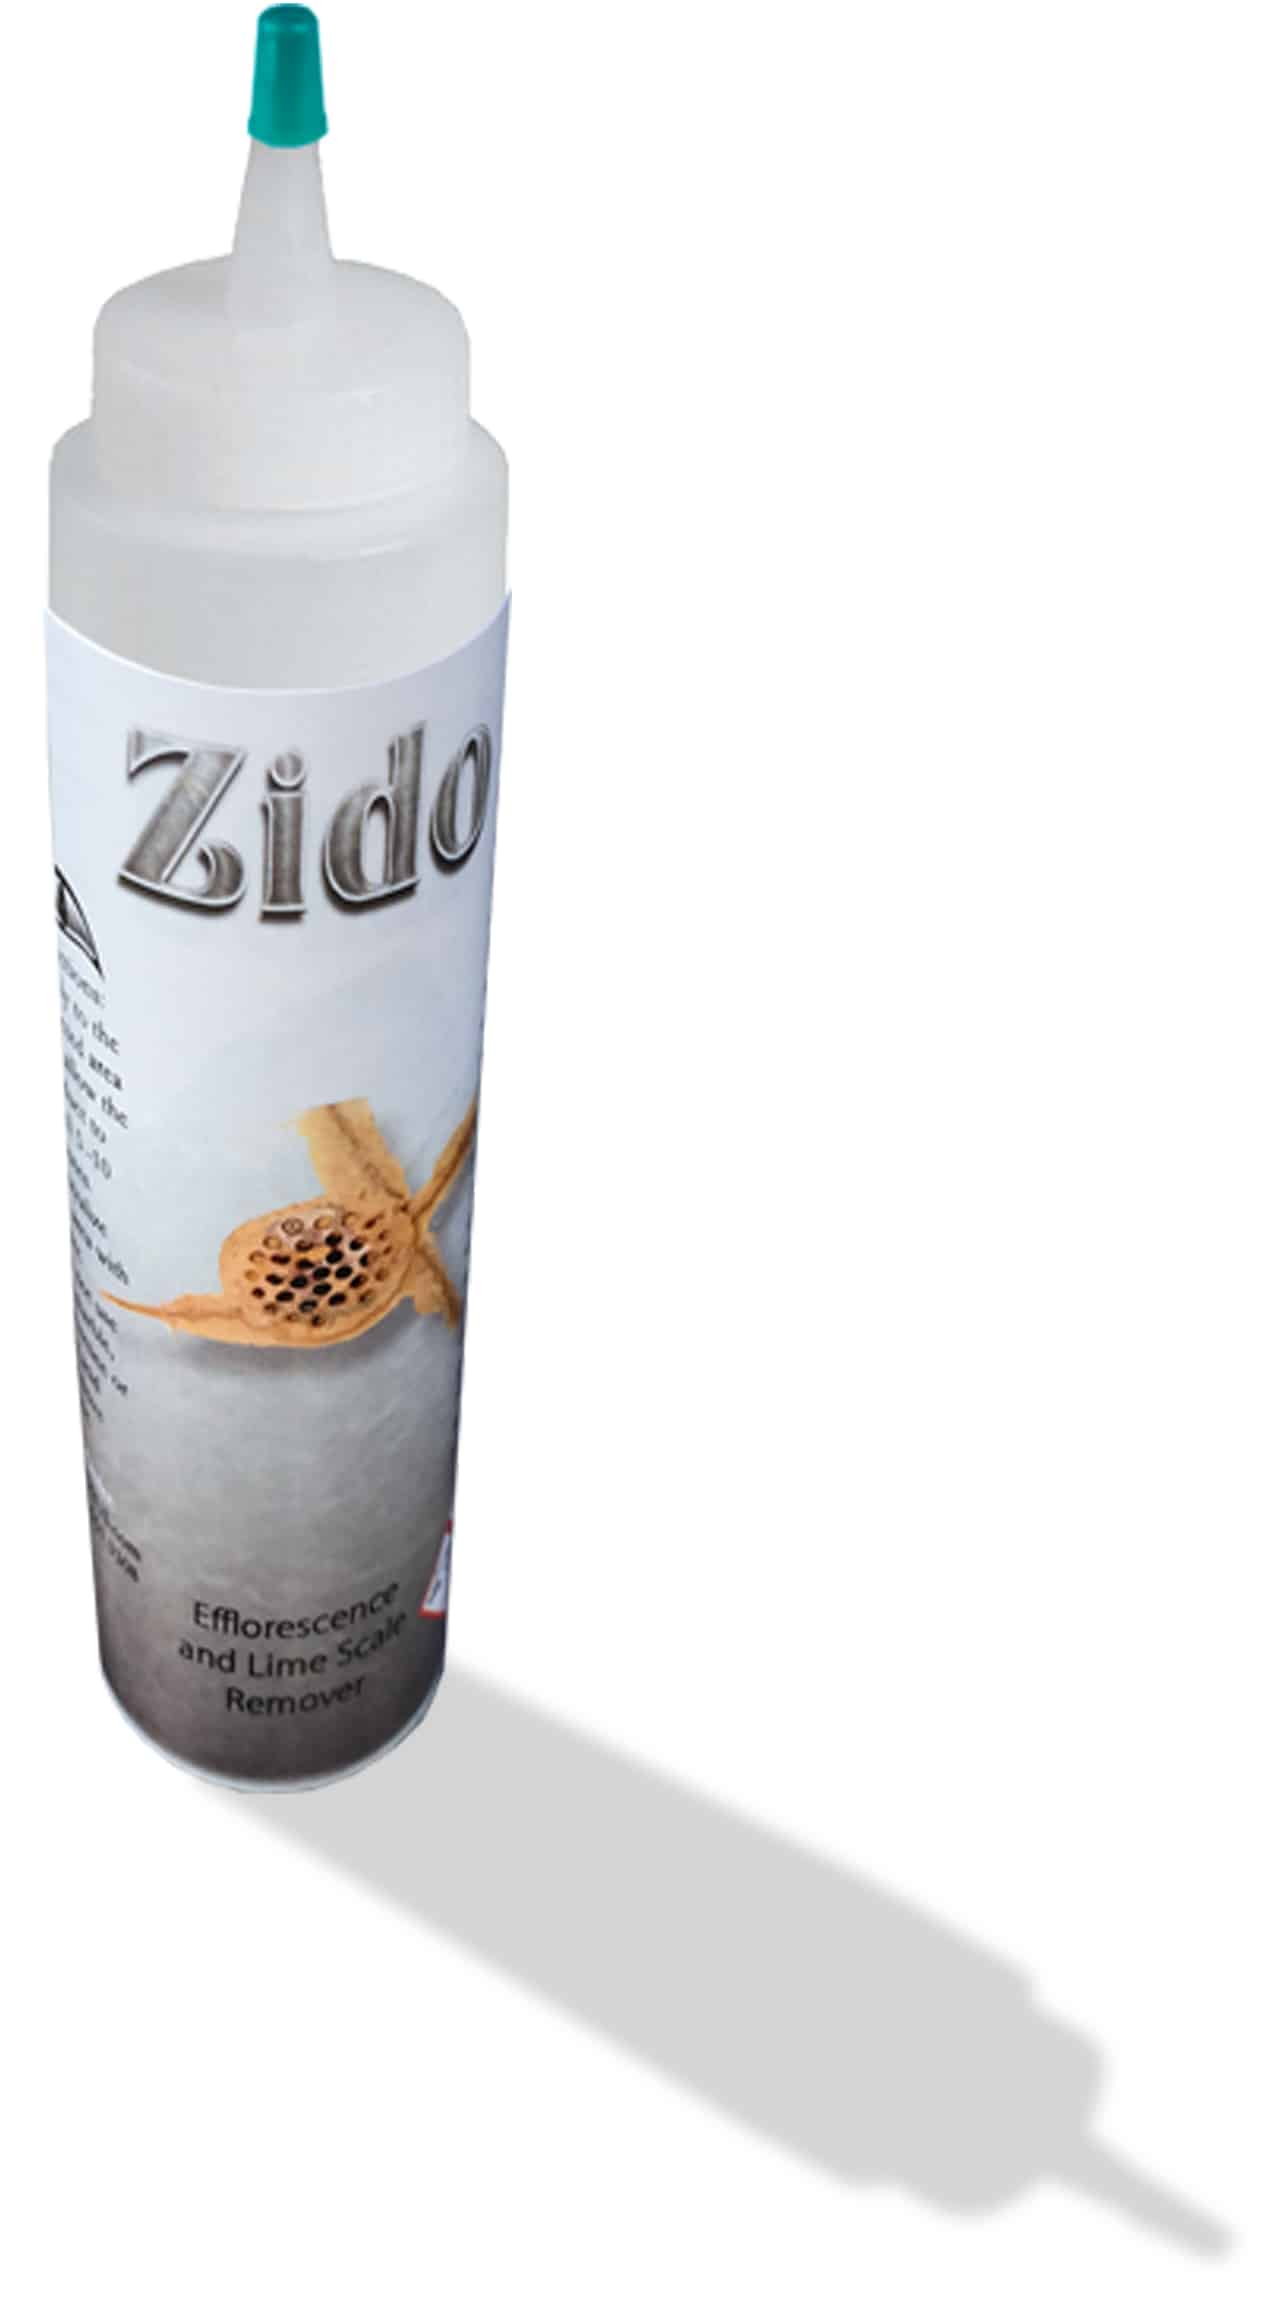 Best Efflorescence Cleaner and Remove - Zido